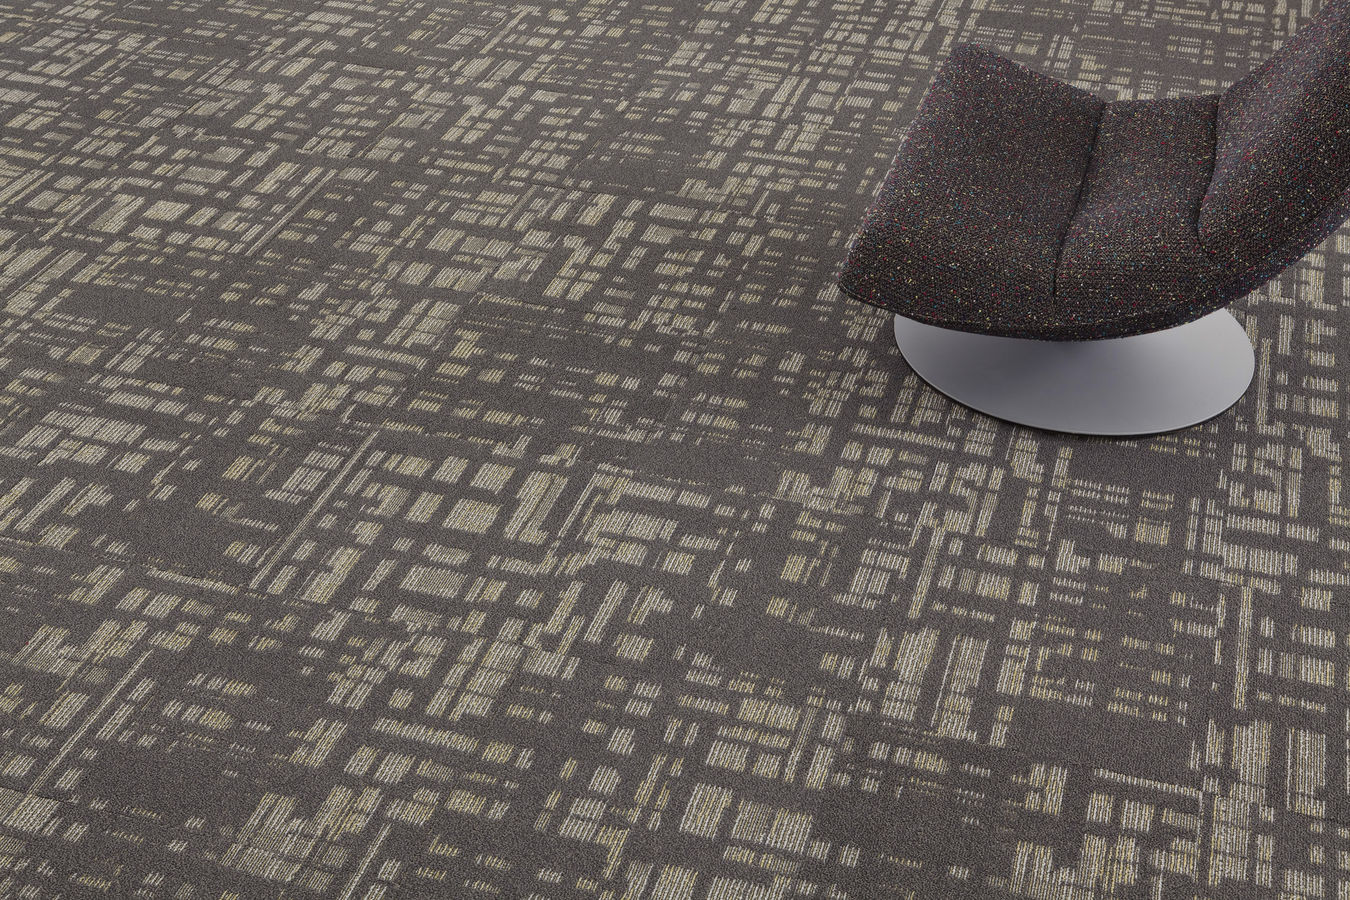 Carpet commercial attractive commercial carpet tiles image of: carpet tiles commercial MIOIMFW